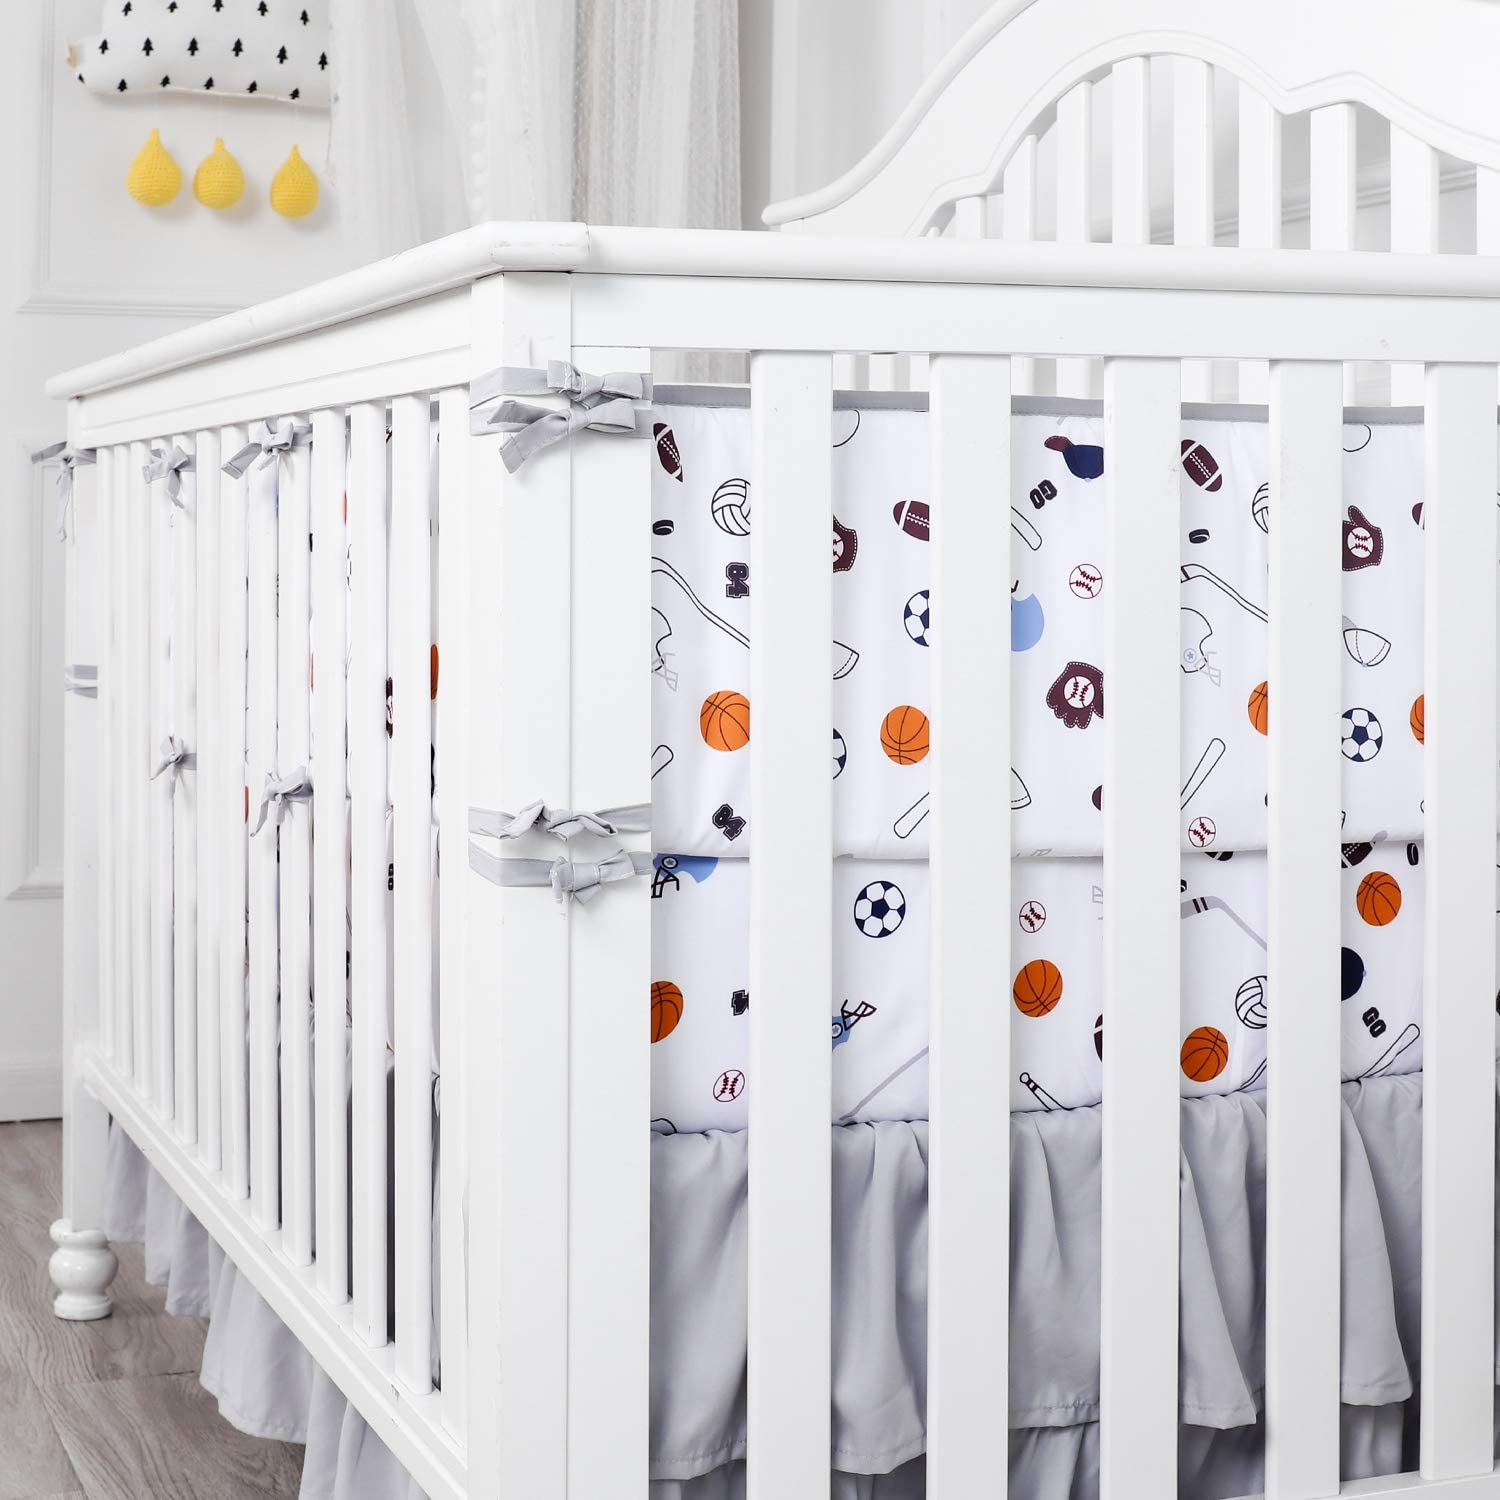 TILLYOU Baby-Safe Breathable Crib Bumper Pads for Standard Cribs Machine Washable Padded Crib Liner for Nursery Bedding 100/% Silky Soft Microfiber Polyester,4 Piece//Baseball Sports